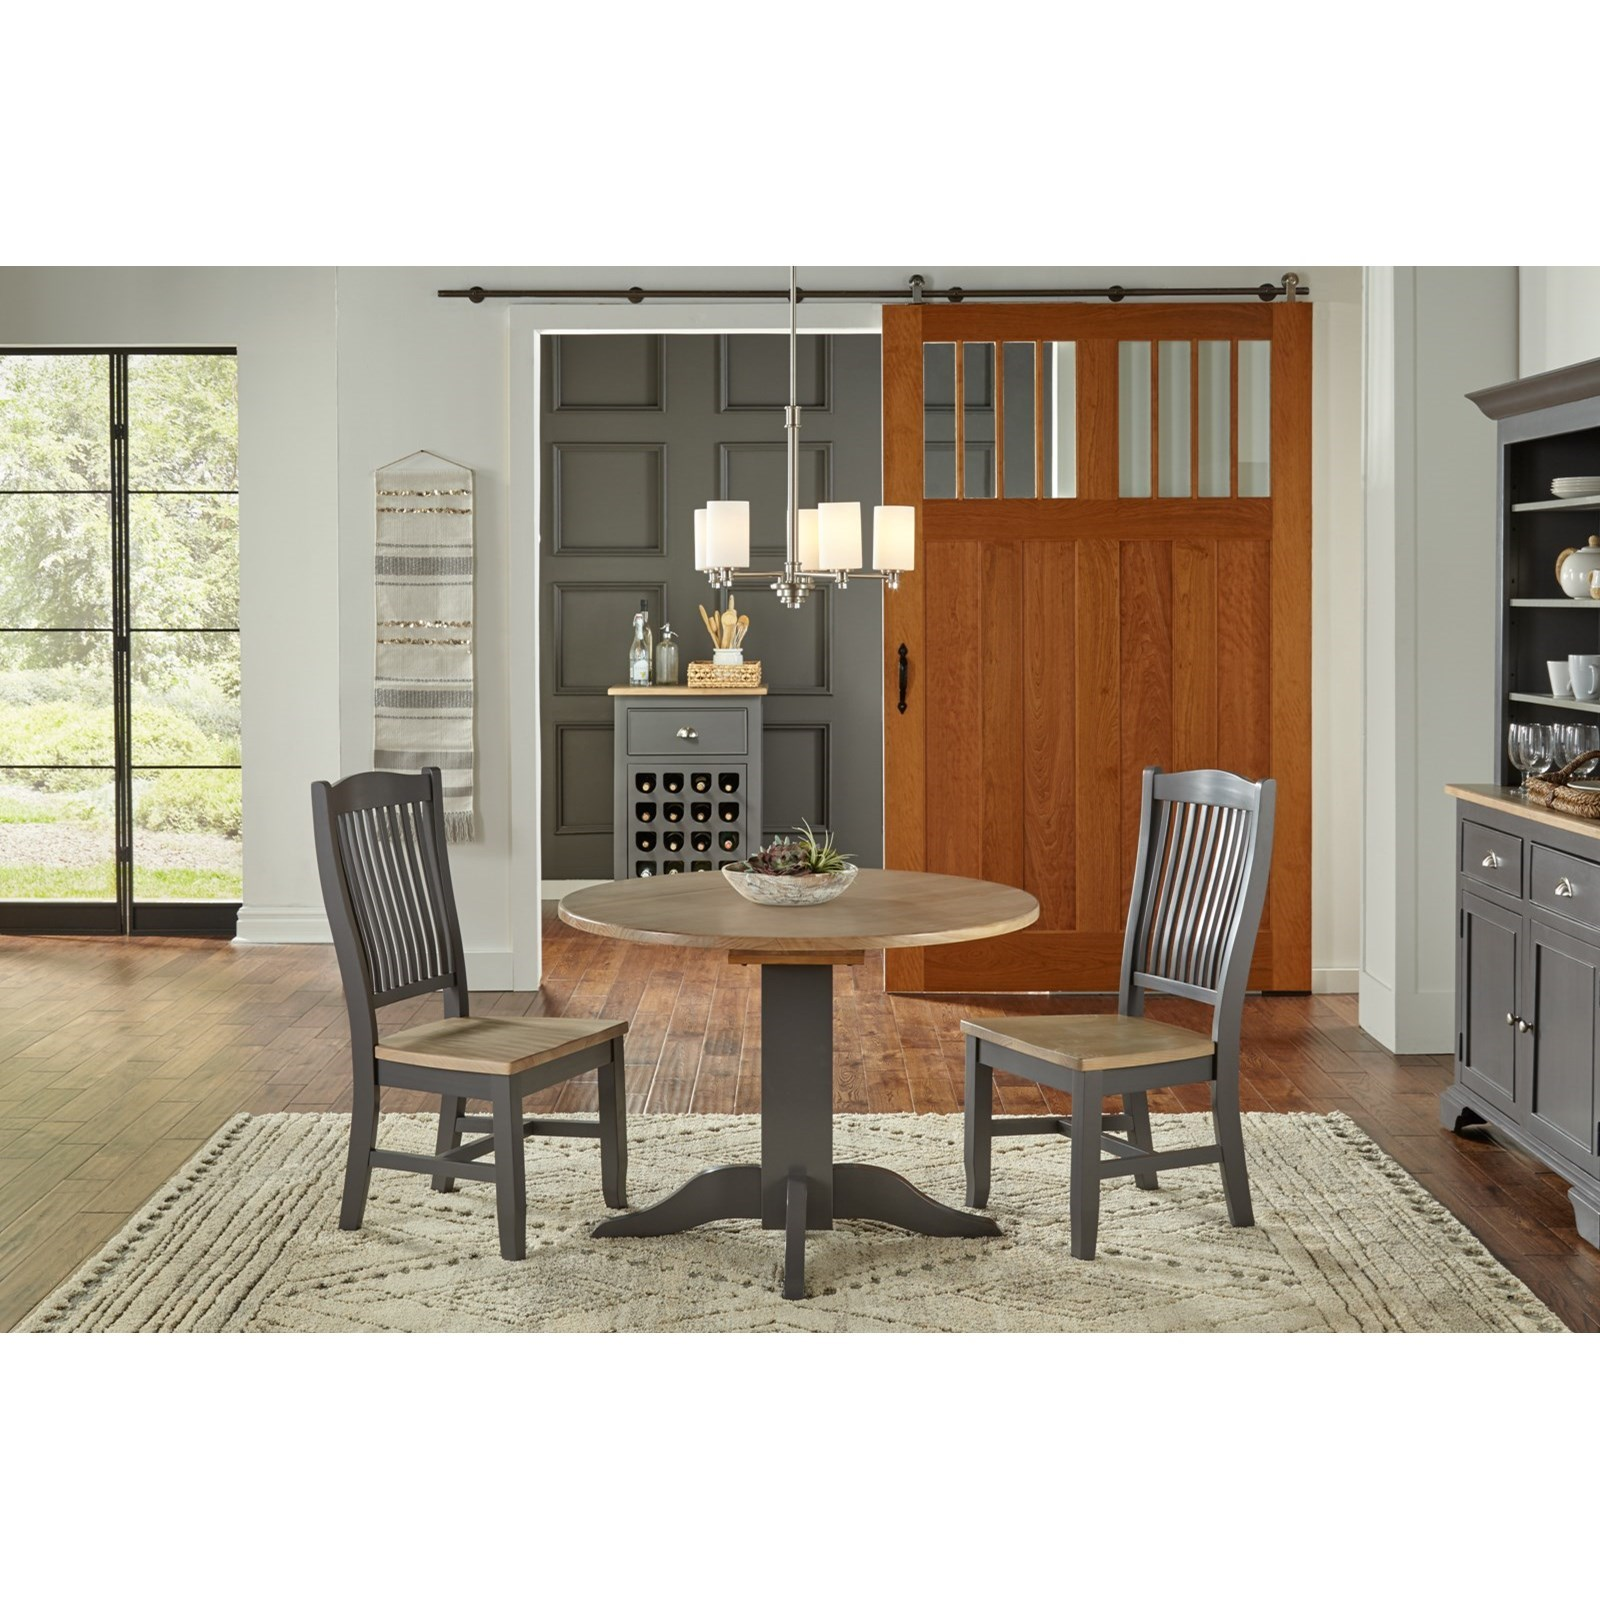 Aamerica Port Townsend Dining Room Group Value City Furniture Formal Dining Room Groups